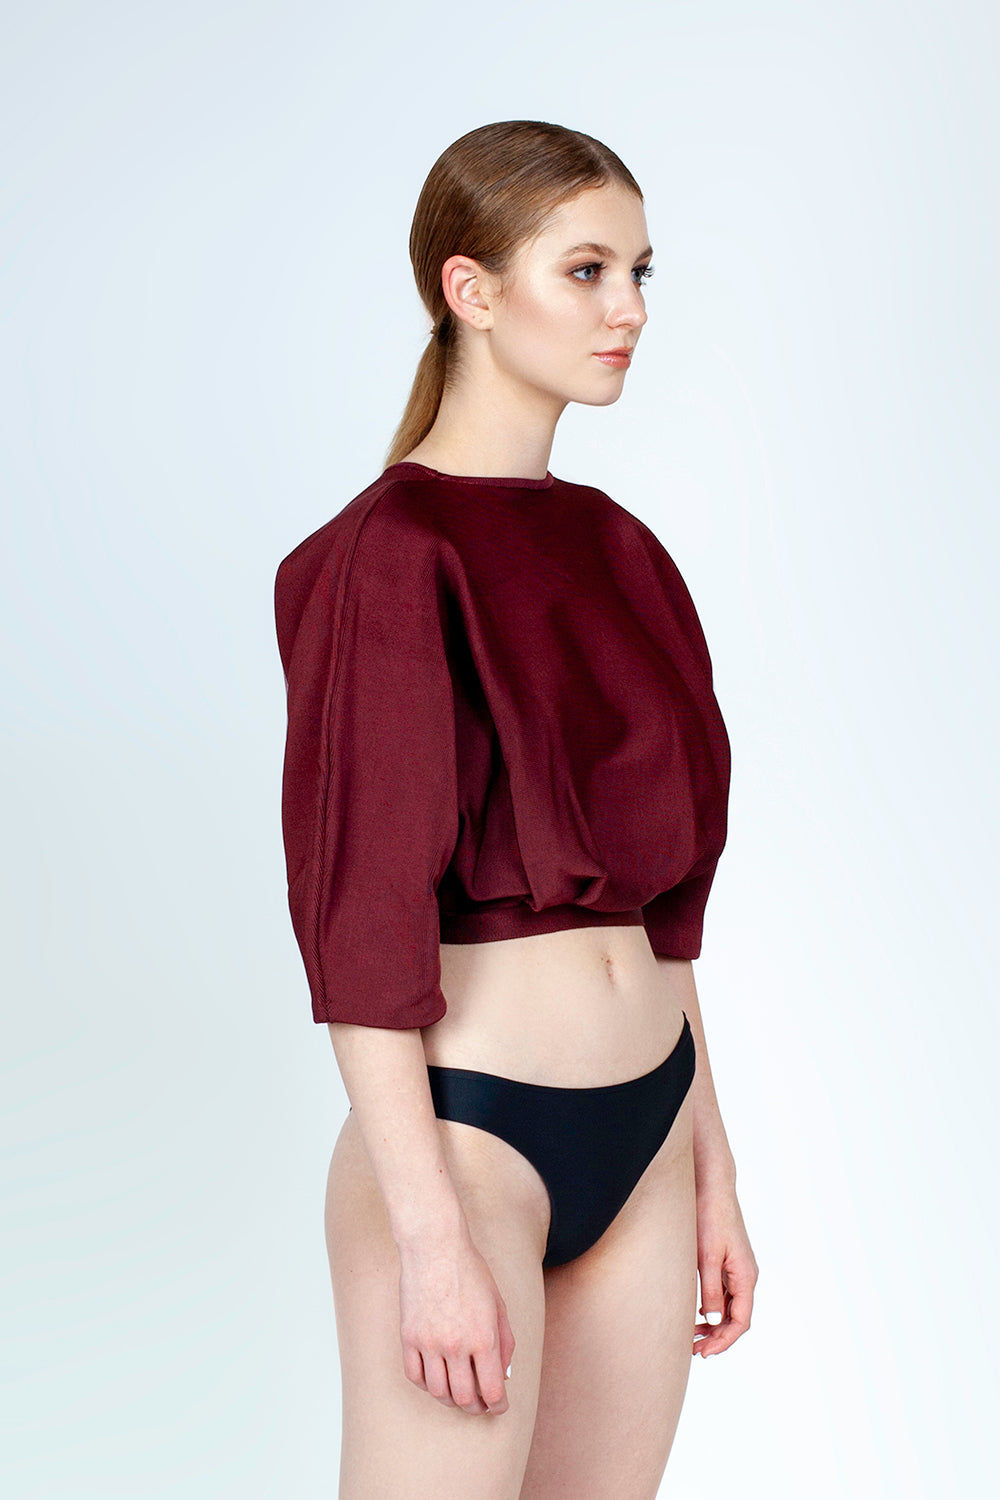 HAIGHT Inner Pleated Knit Top - Garnet Red Top | Garnet Red| Haight Inner Pleated Knit Bikini Top - Garnet Red Features:  Crew neckline  Sleeves to elbow length Pleated detail Side View